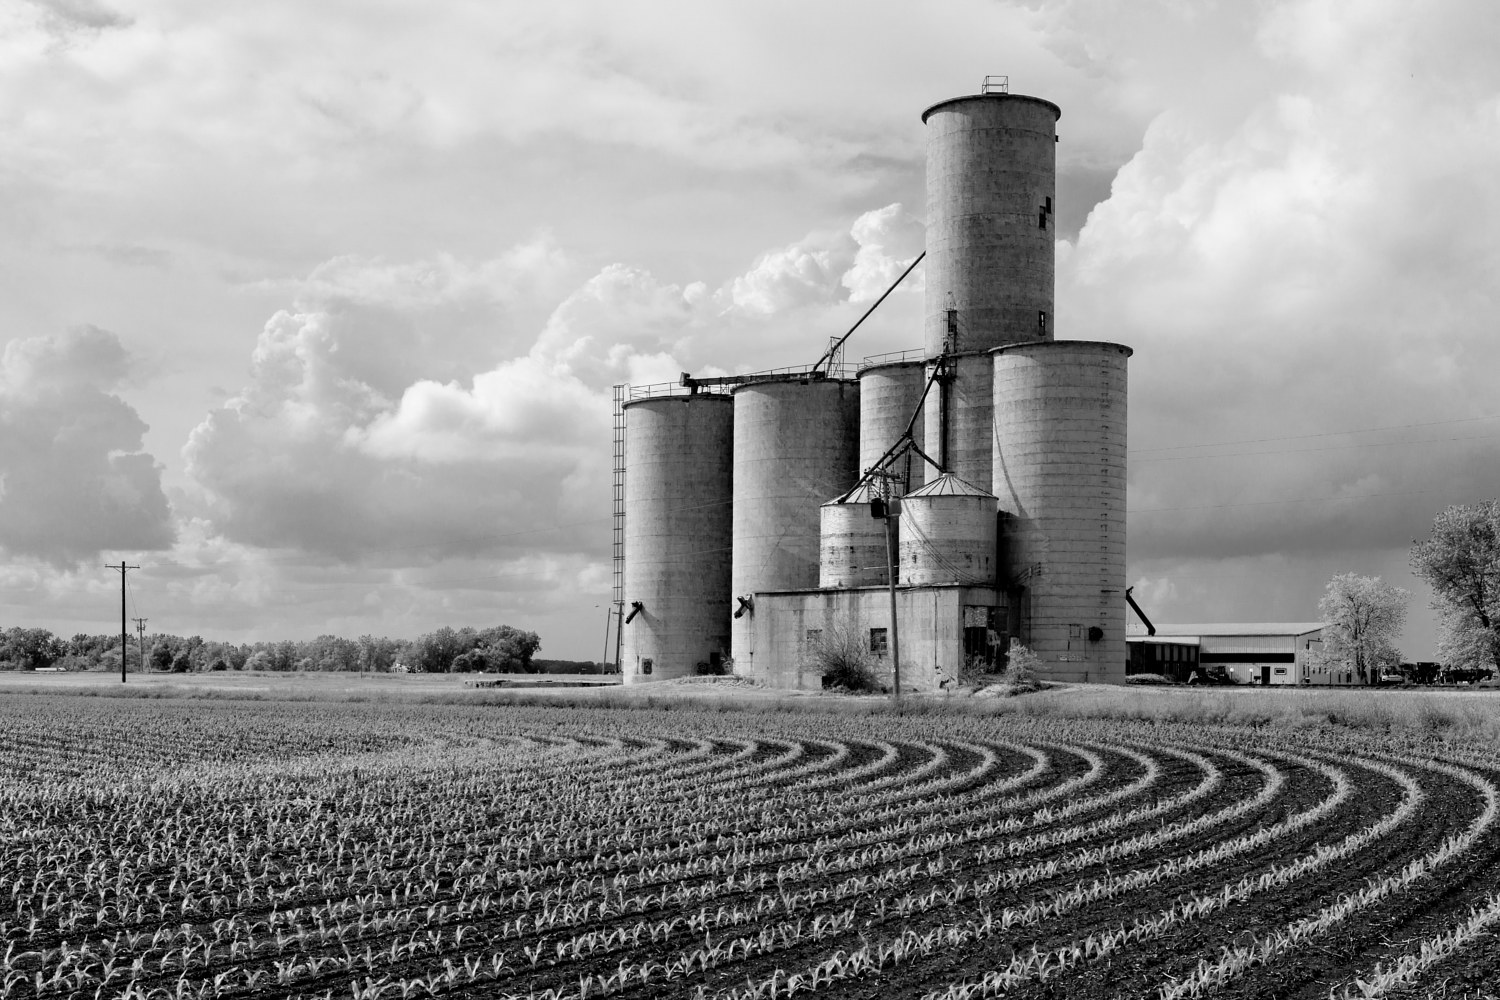 Farmer City Grain Elevator 2015 DSC00991-Edit by Ted Diamond